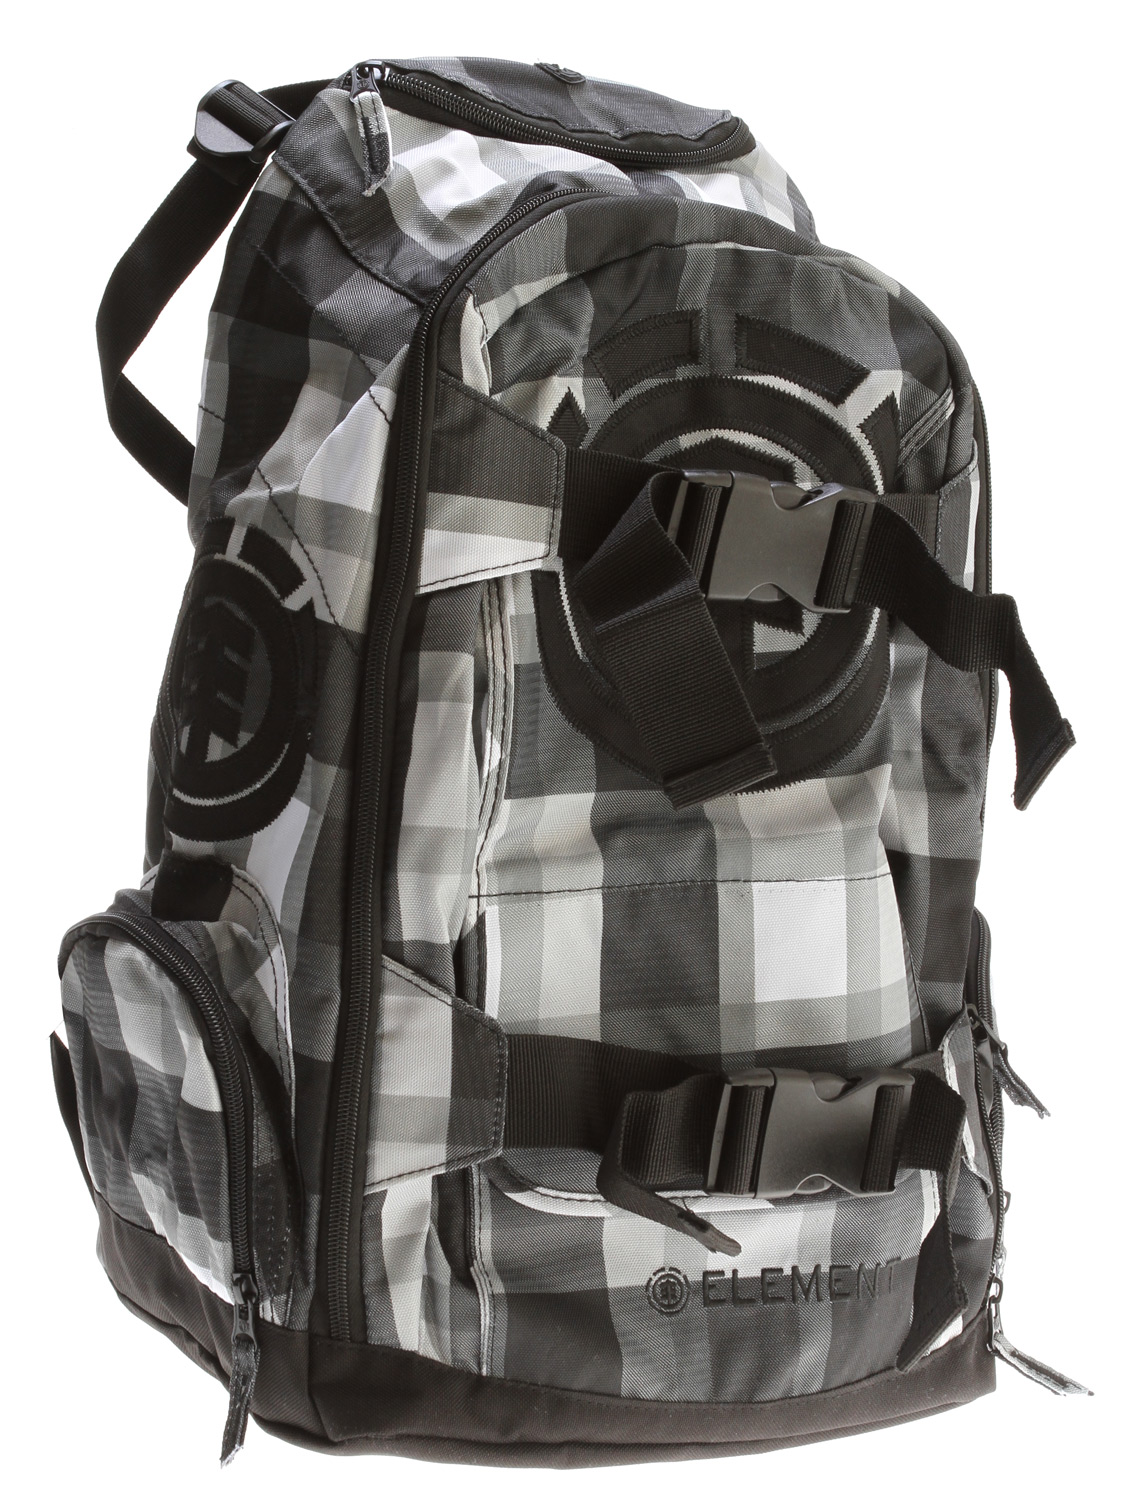 "Skateboard Key Features of the Element Mohave Woodranch Backpack: 600D polyester printed backpack with skatestraps Music holder Front logo applique Side pockets 11"" w x 19"" h x 9"" d - $49.50"